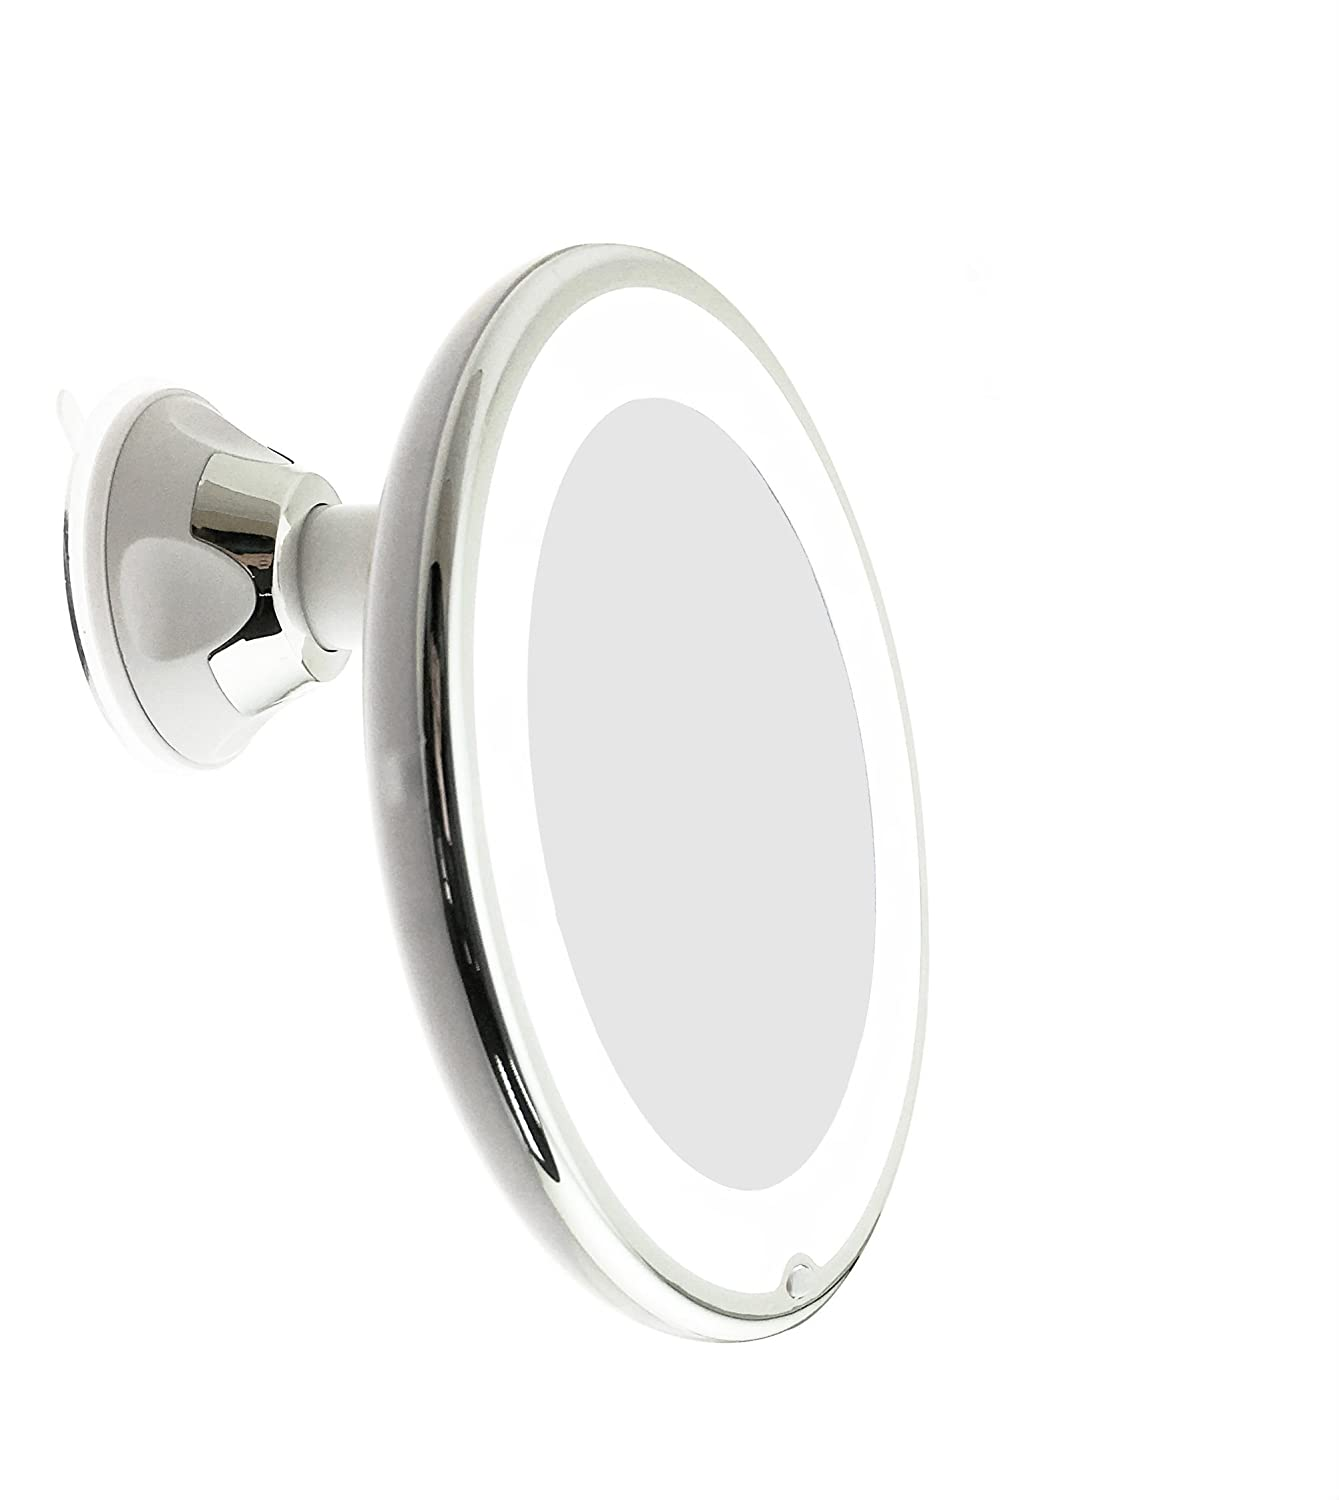 JiBen LED Lighted 5X Magnifying Makeup Mirror with Power Locking Suction Cup, Bright Diffused Light and 360 Degree Rotating Adjustable Arm, Portable Cordless Home and Travel Bathroom Vanity Mirror